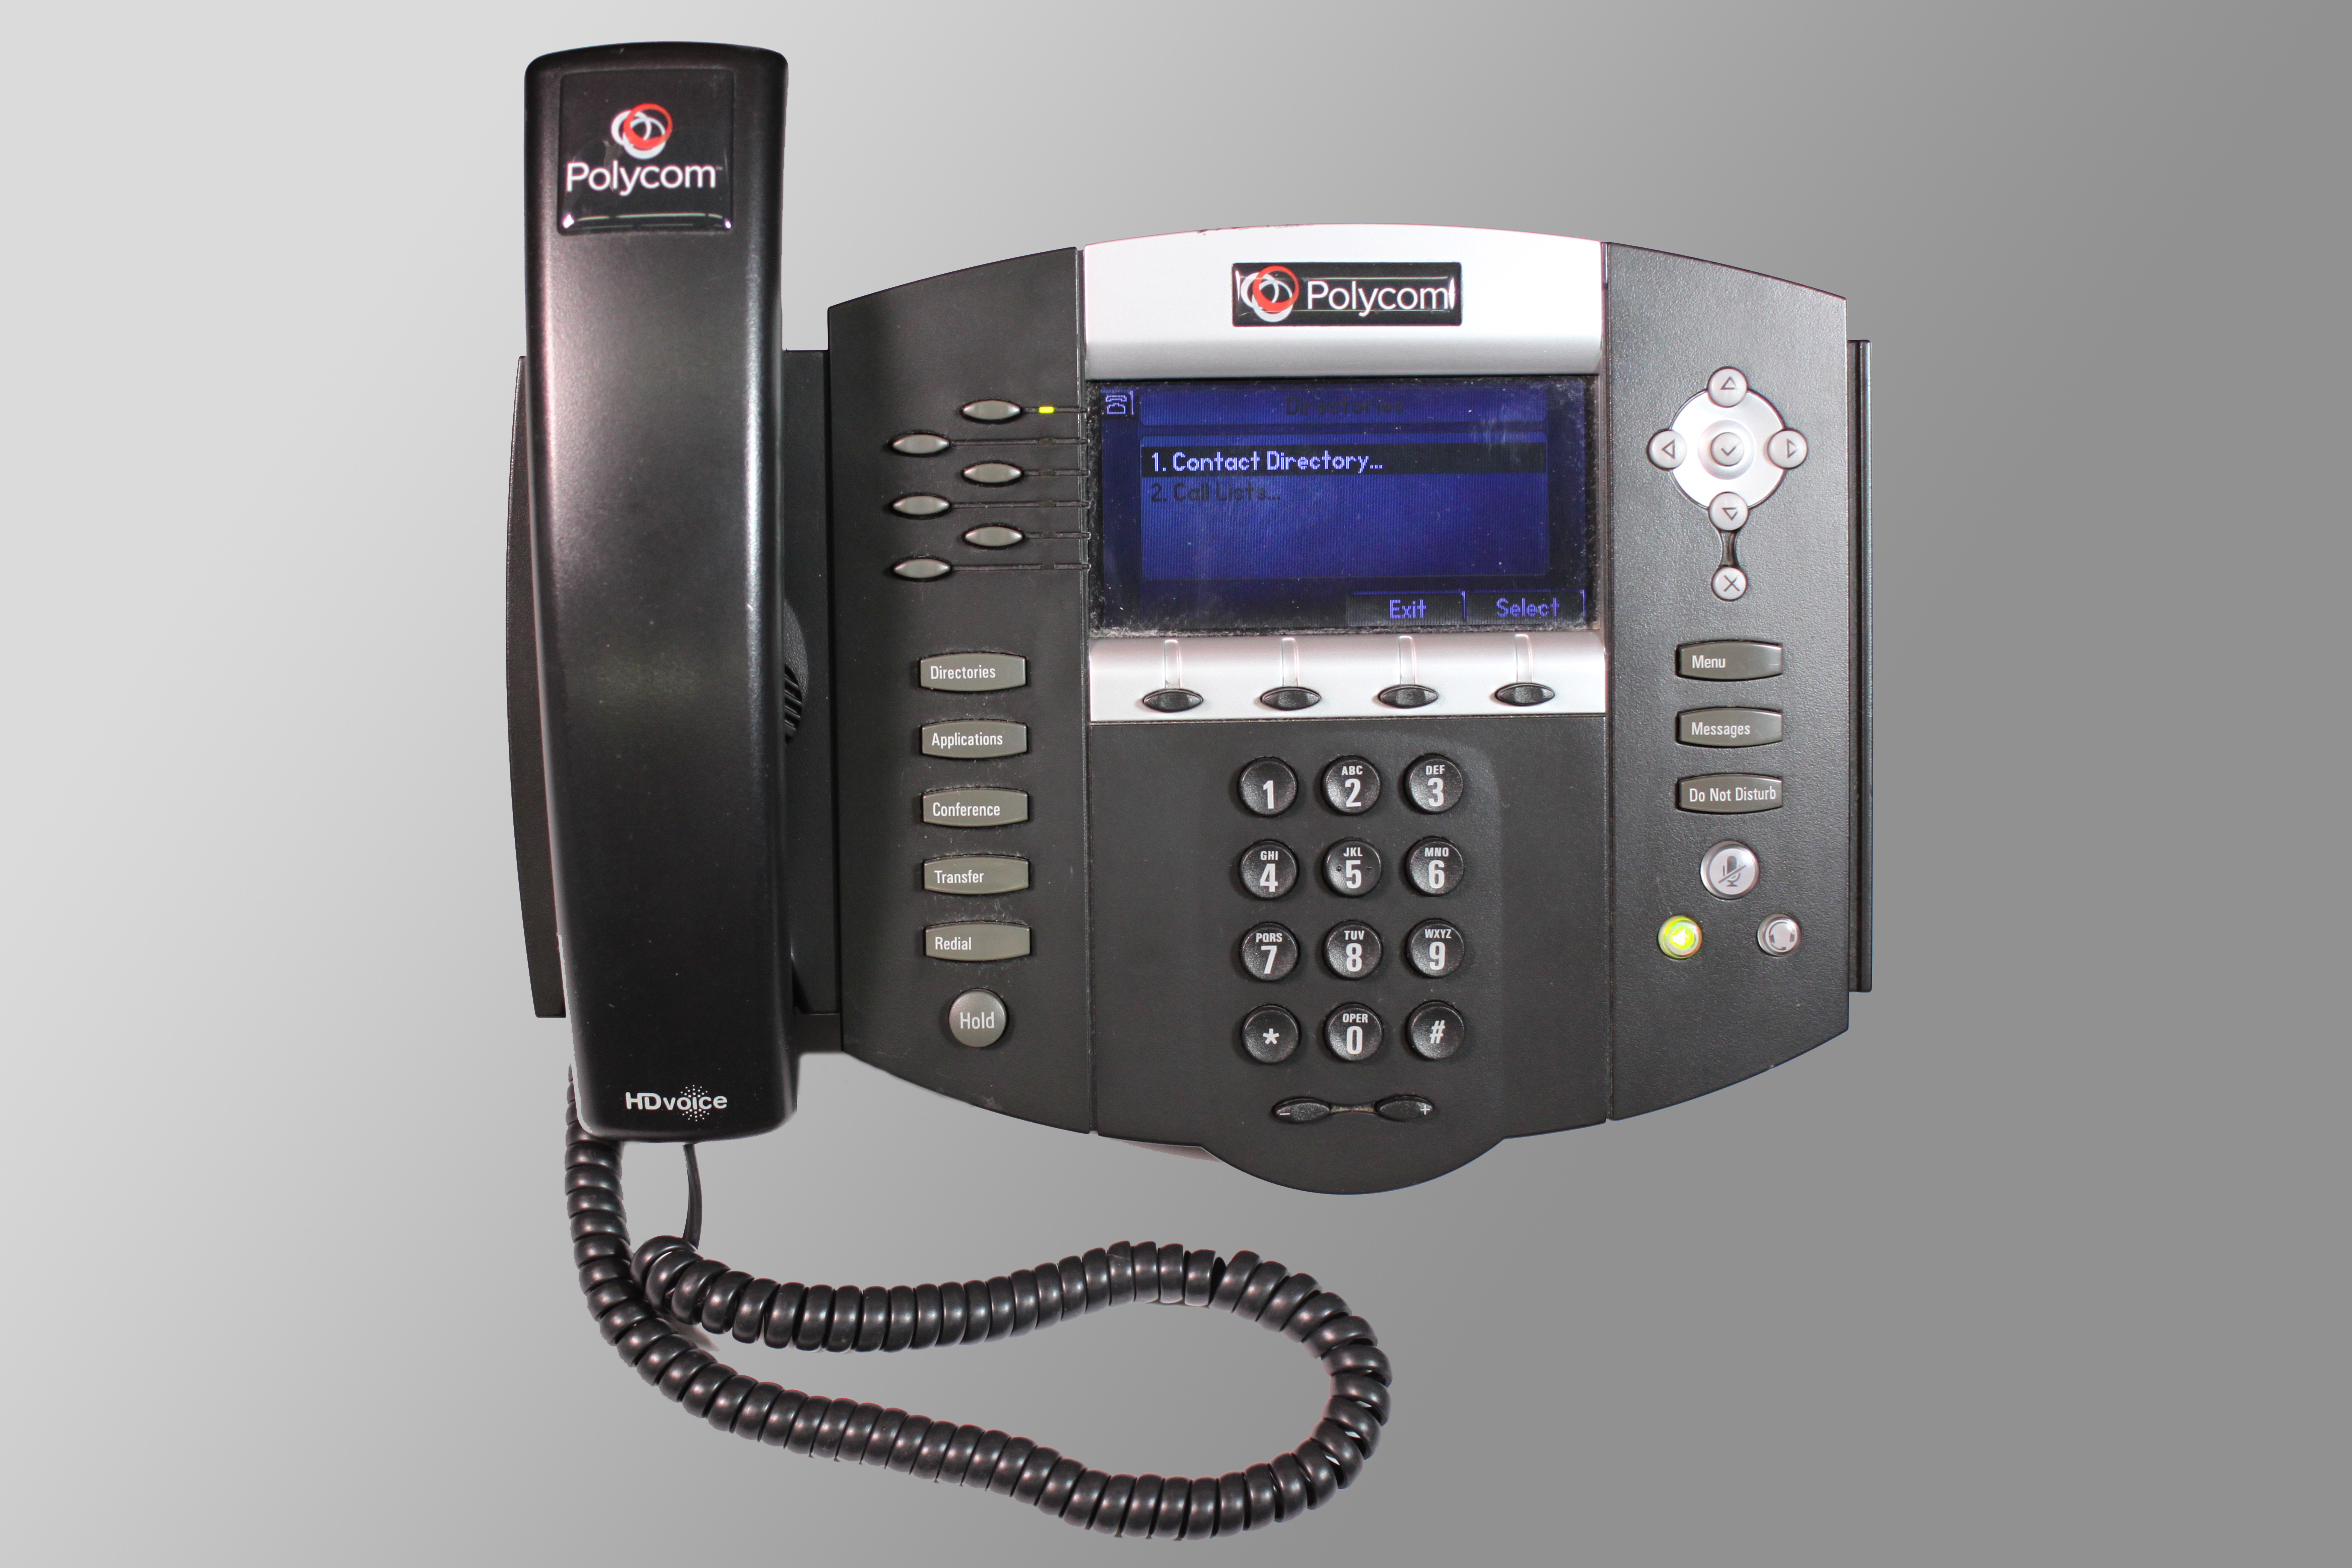 Polycom Office Phone